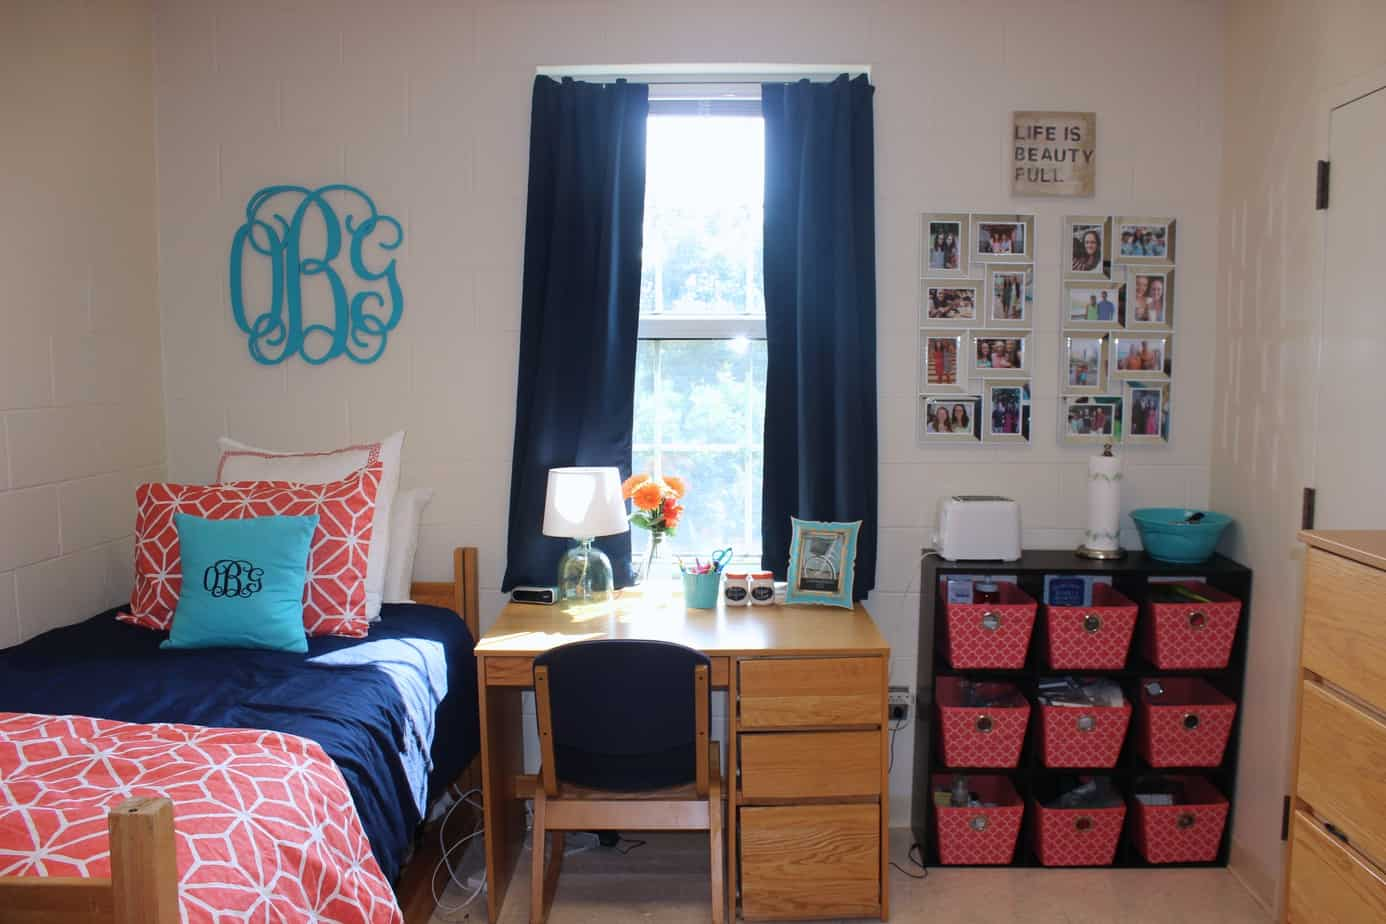 How To Address Mail To A Dorm Room